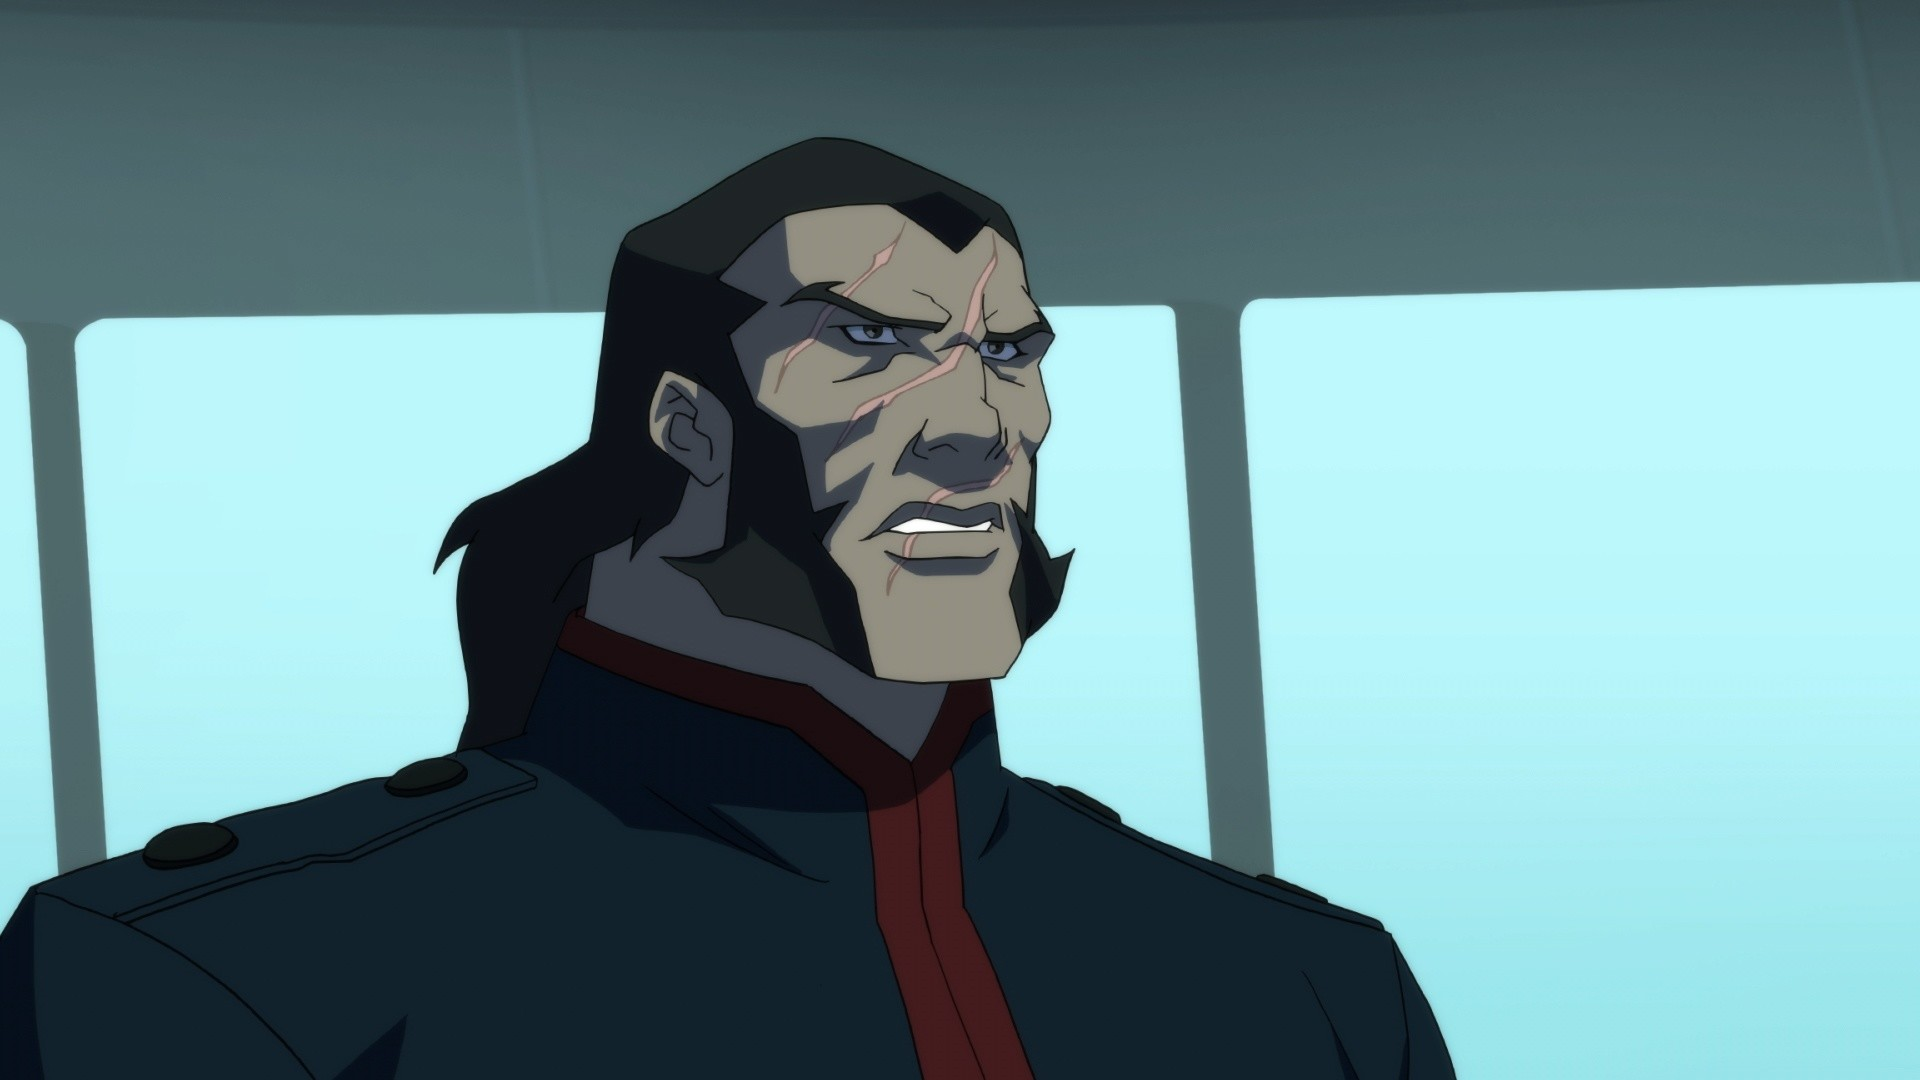 1920x1080 'Young Justice: Outsiders' Recap, Episodes 7-9 - Black Nerd Problems